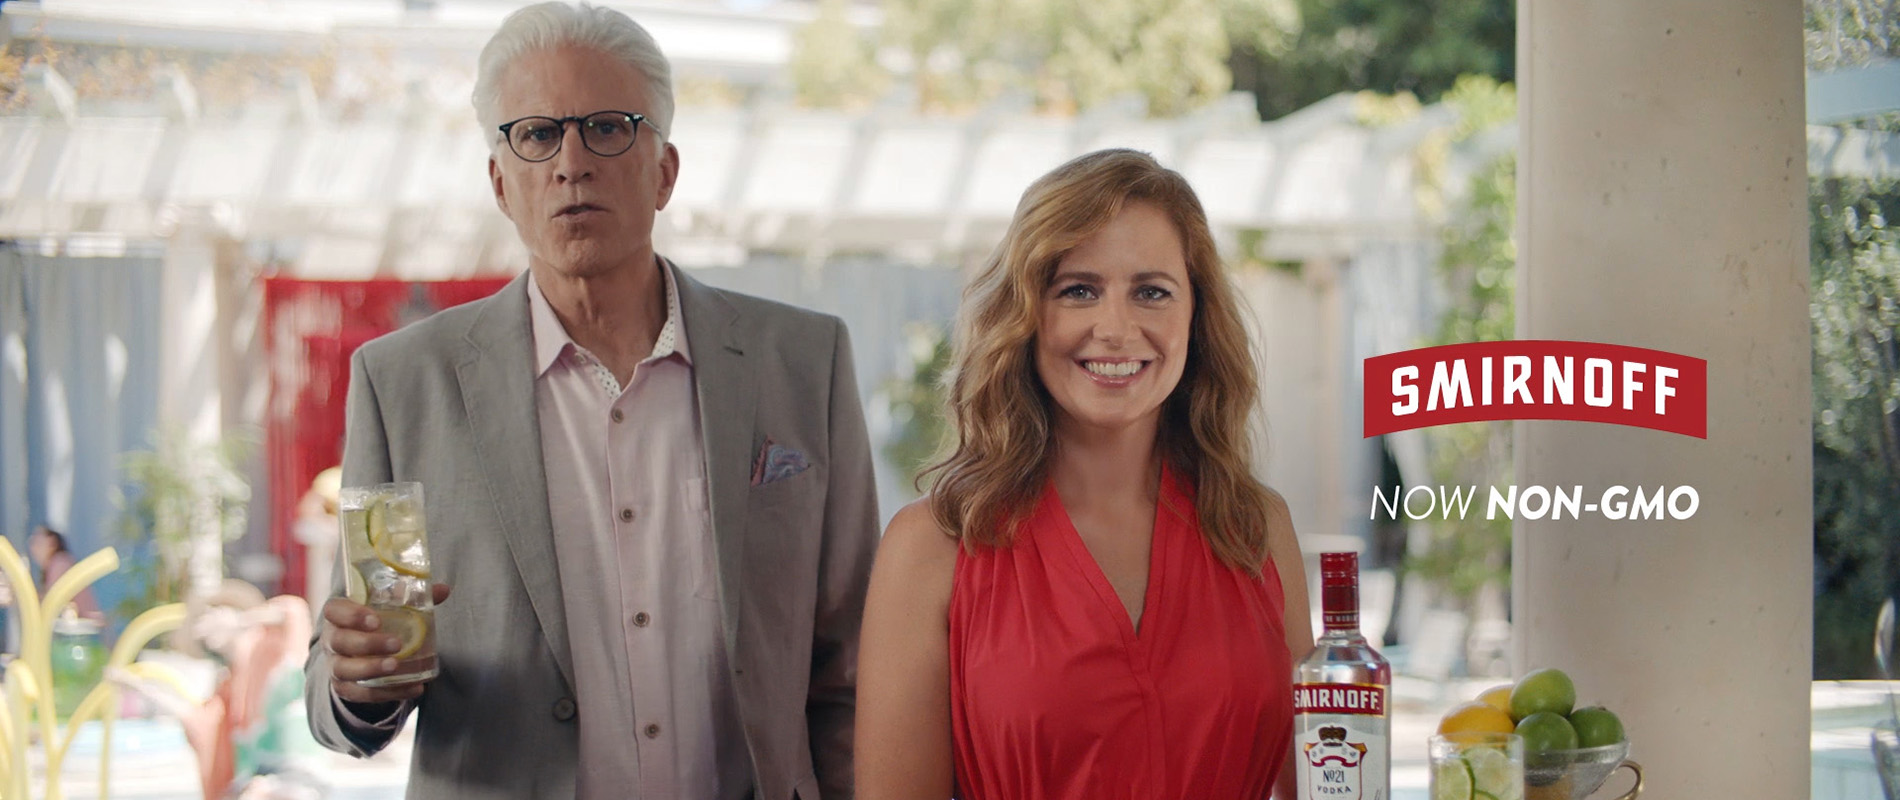 OMG! Smirnoff No. 21 Vodka is Non-GMO